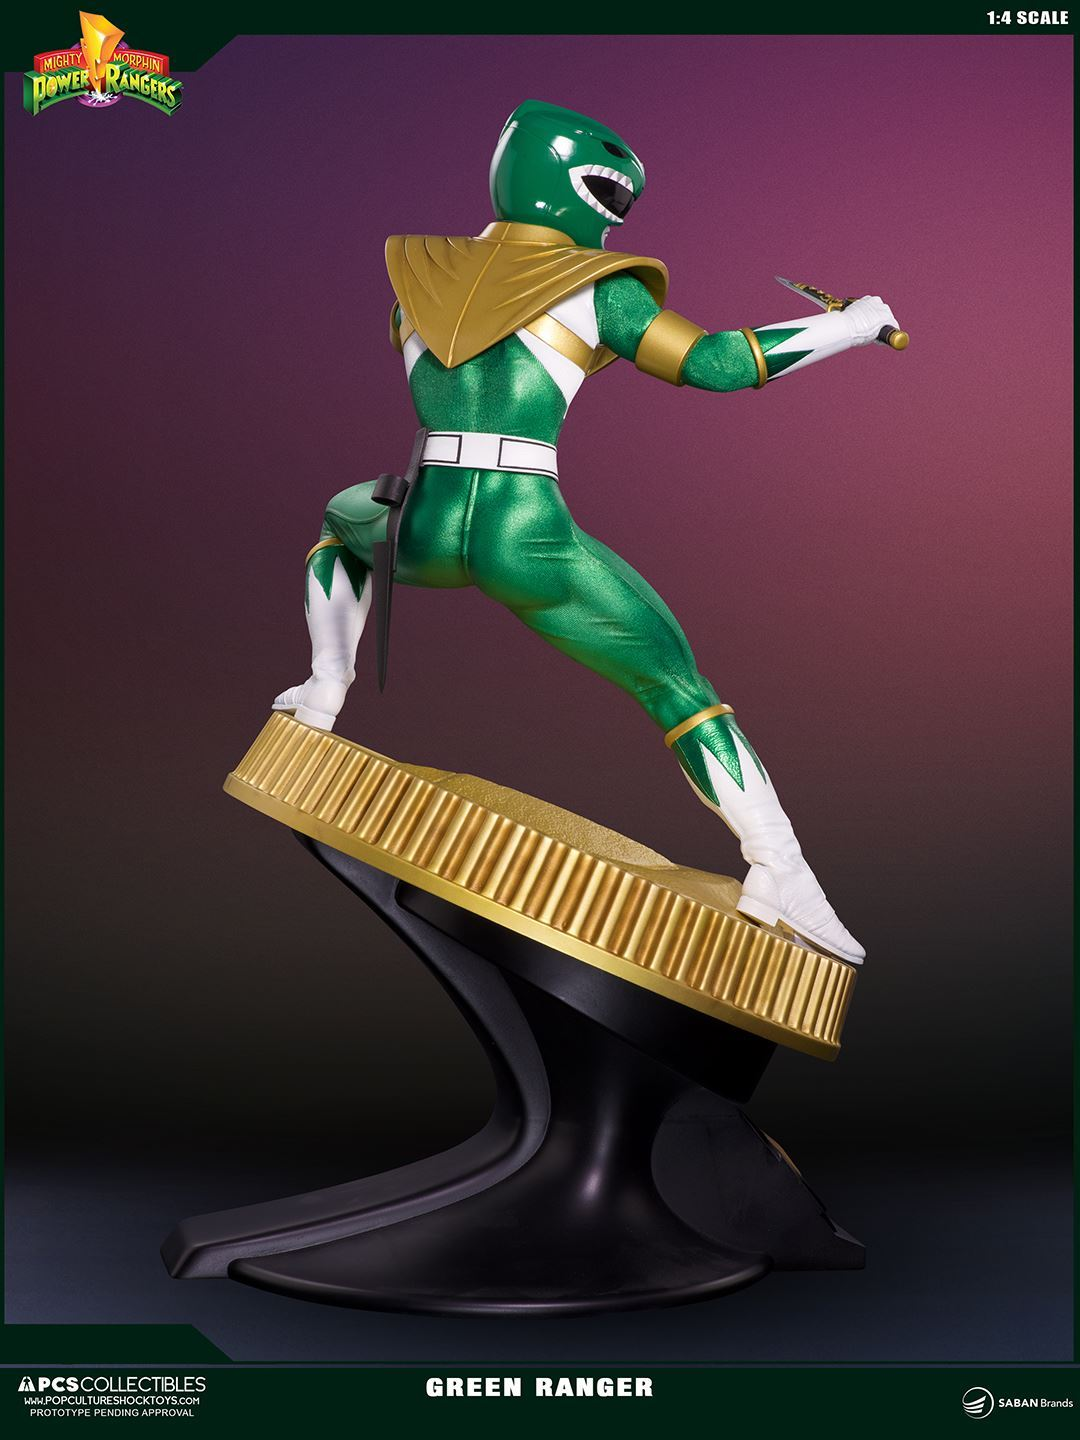 PCS Collectibles - Mighty Morphin' Power Rangers - Green Ranger 1/4 Statue